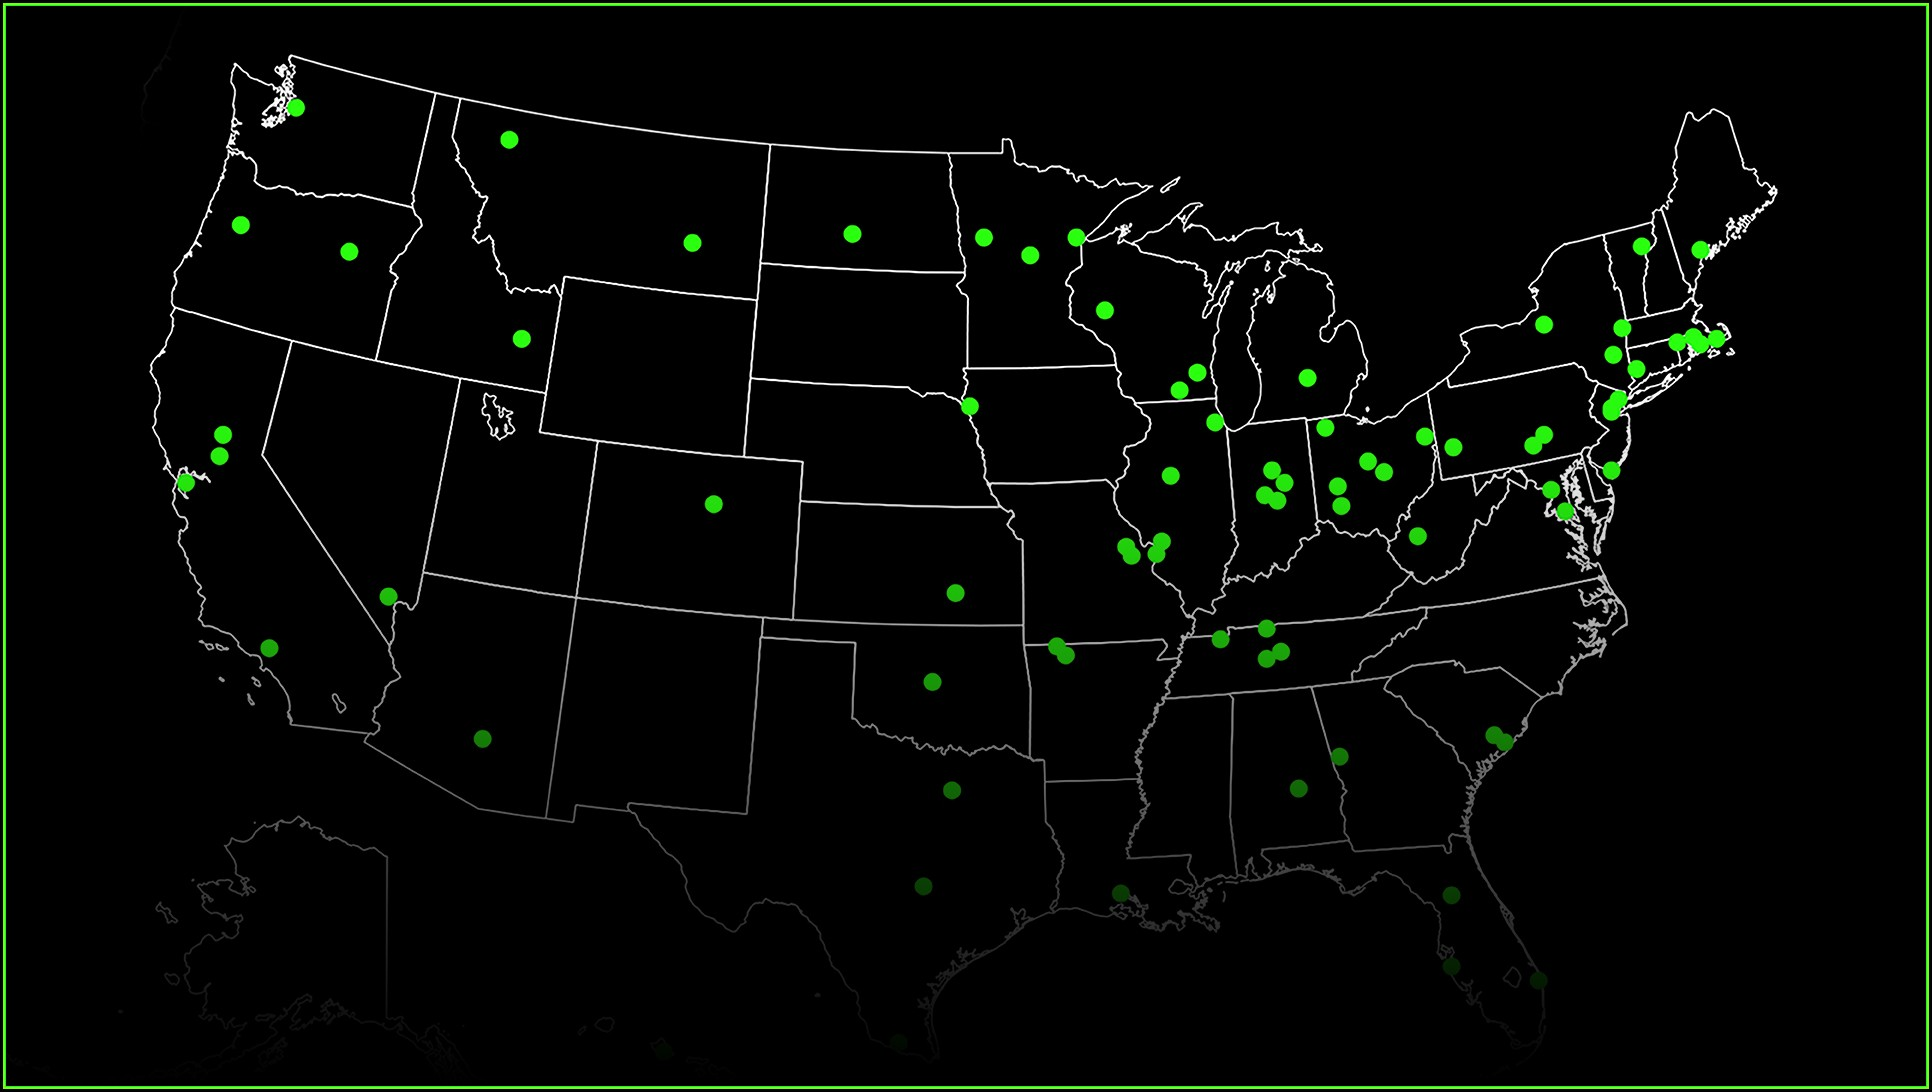 Ransomware Threat Map